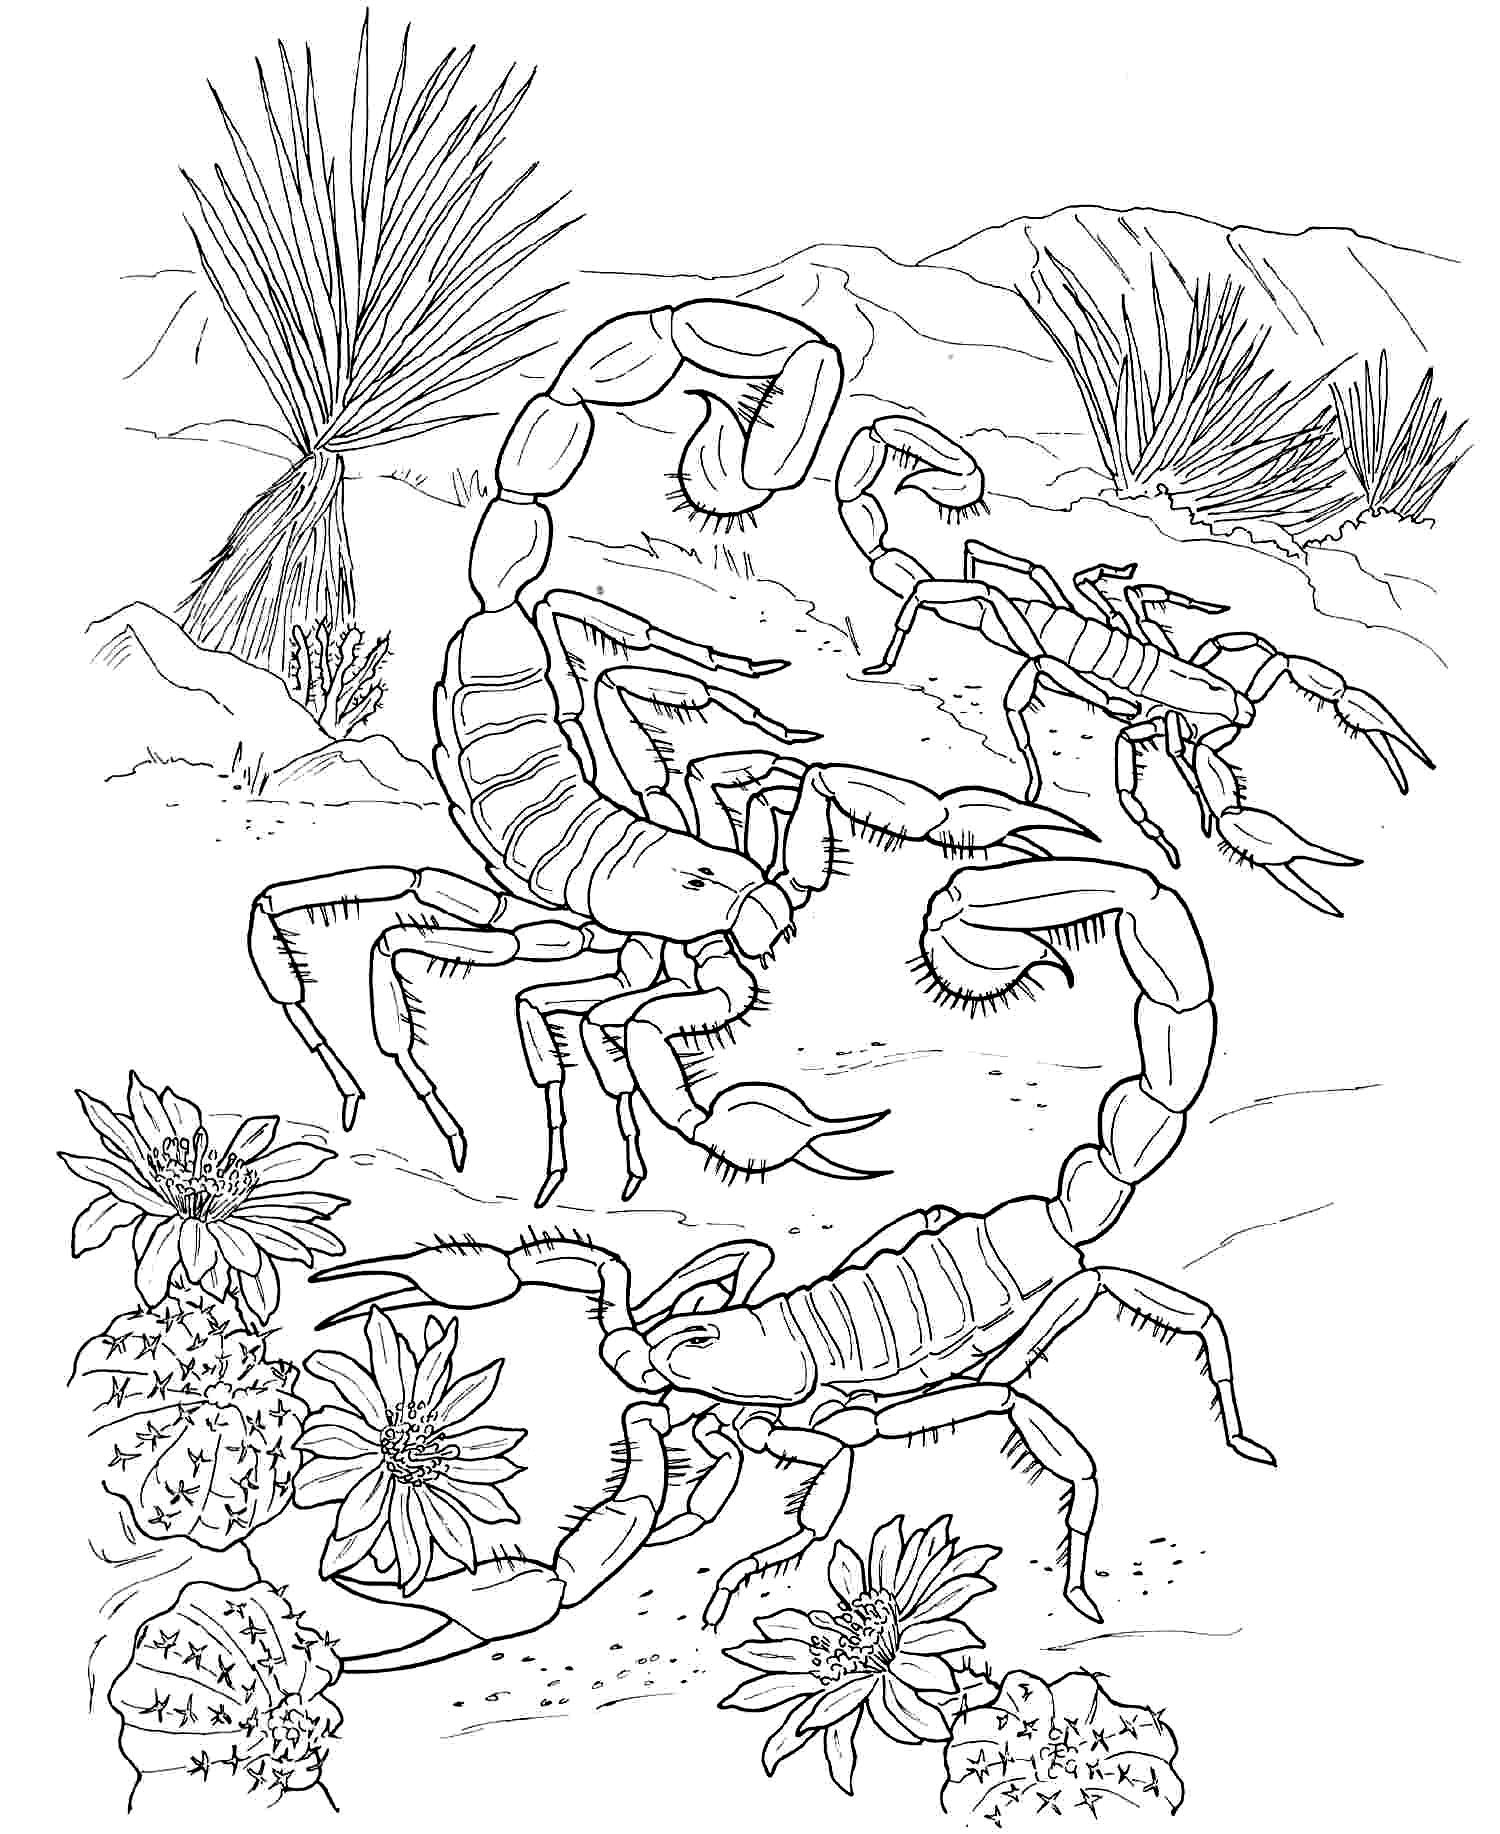 Free Printable Scorpion Coloring Pages For Kids Animal Coloring Pages Coloring Book Art Coloring Pages